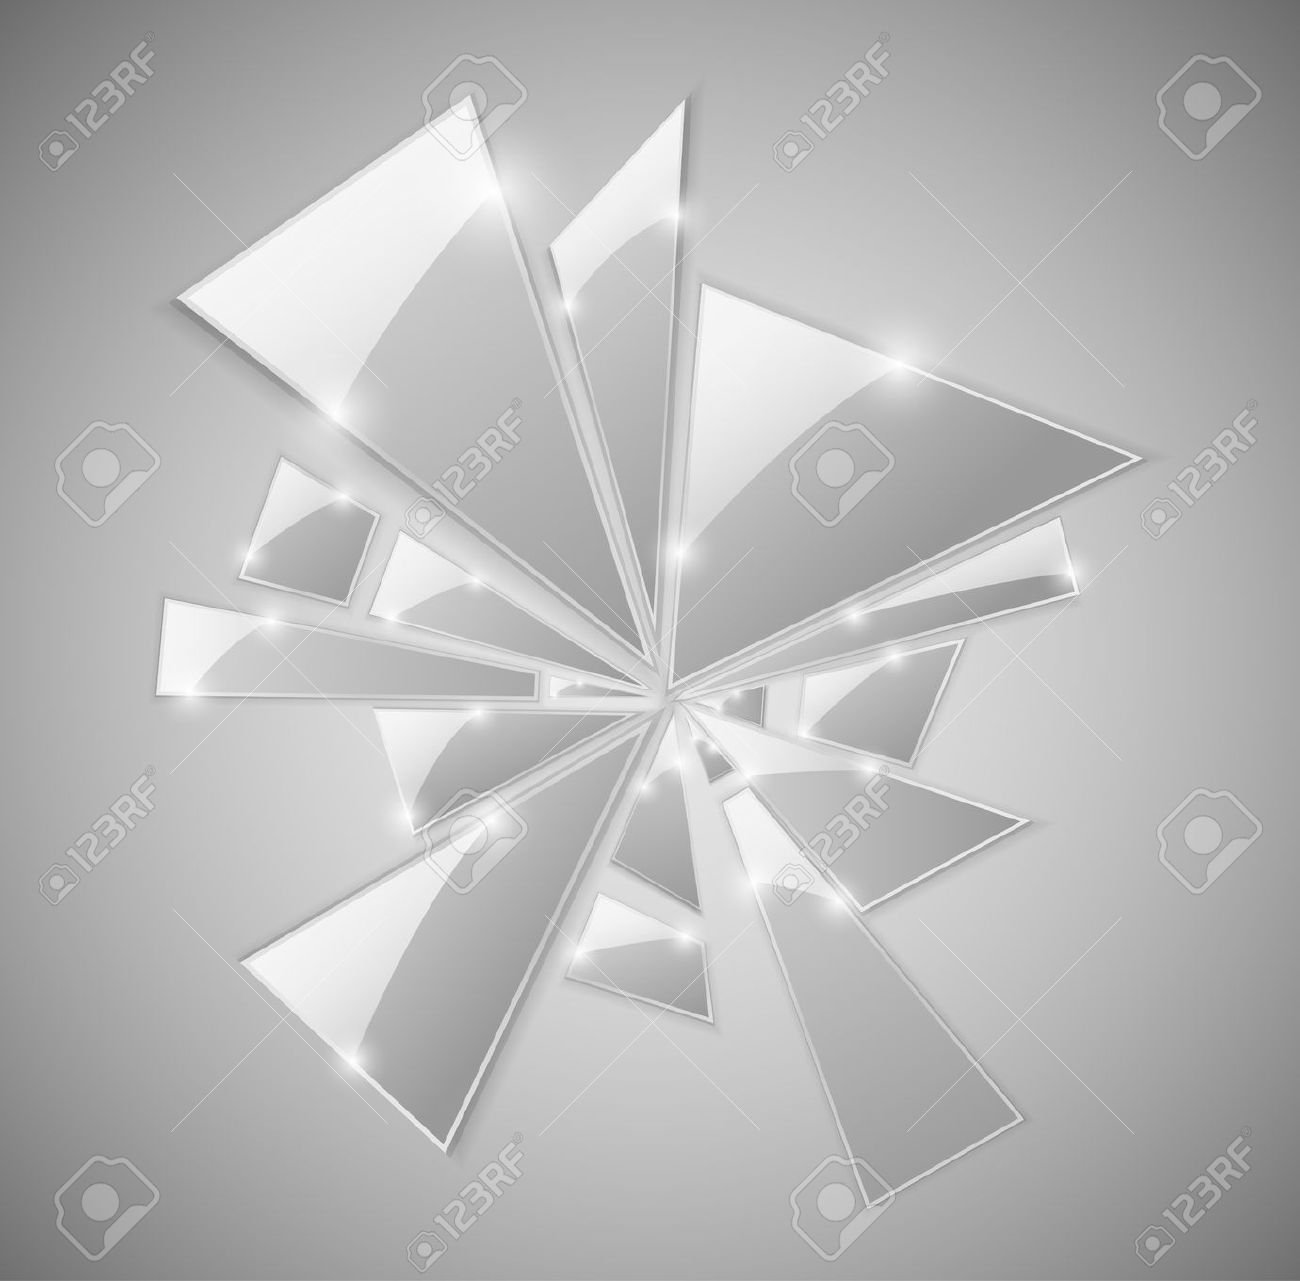 Triangular Shards Of The Broken Glass. Royalty Free Cliparts.